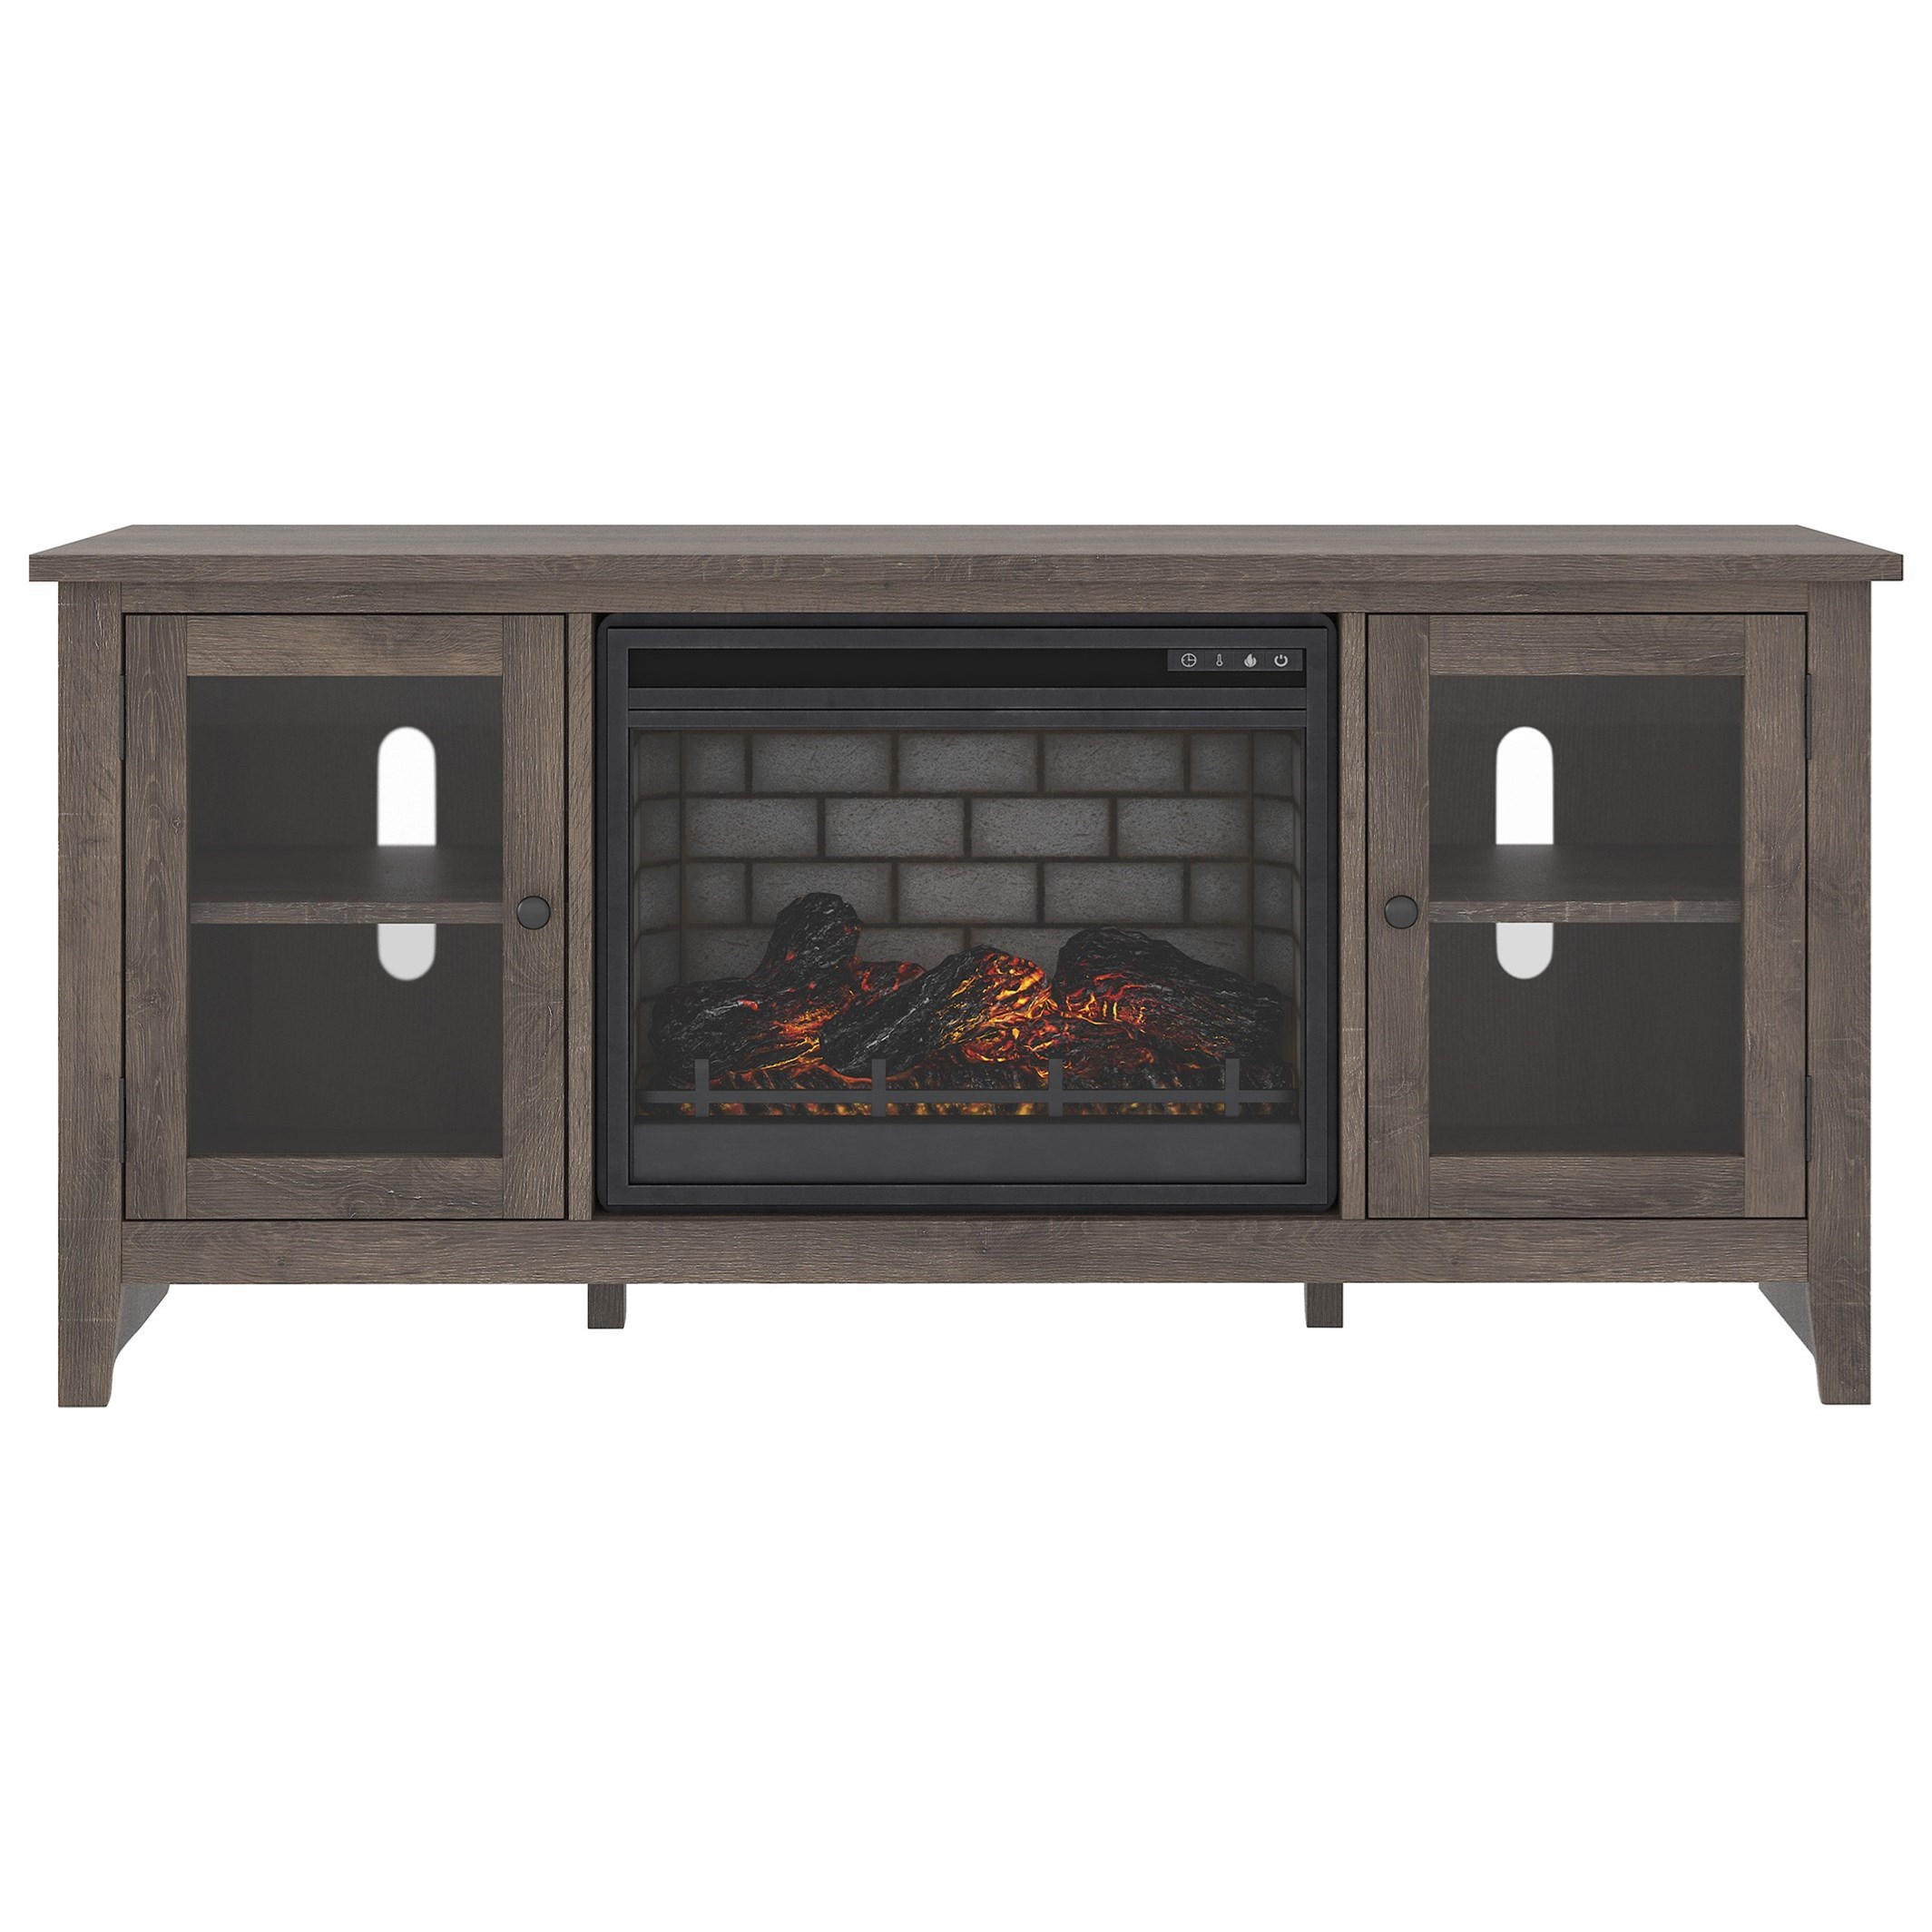 Arlenbry Large TV Stand w/ Fireplace Insert by Signature Design by Ashley at Lapeer Furniture & Mattress Center